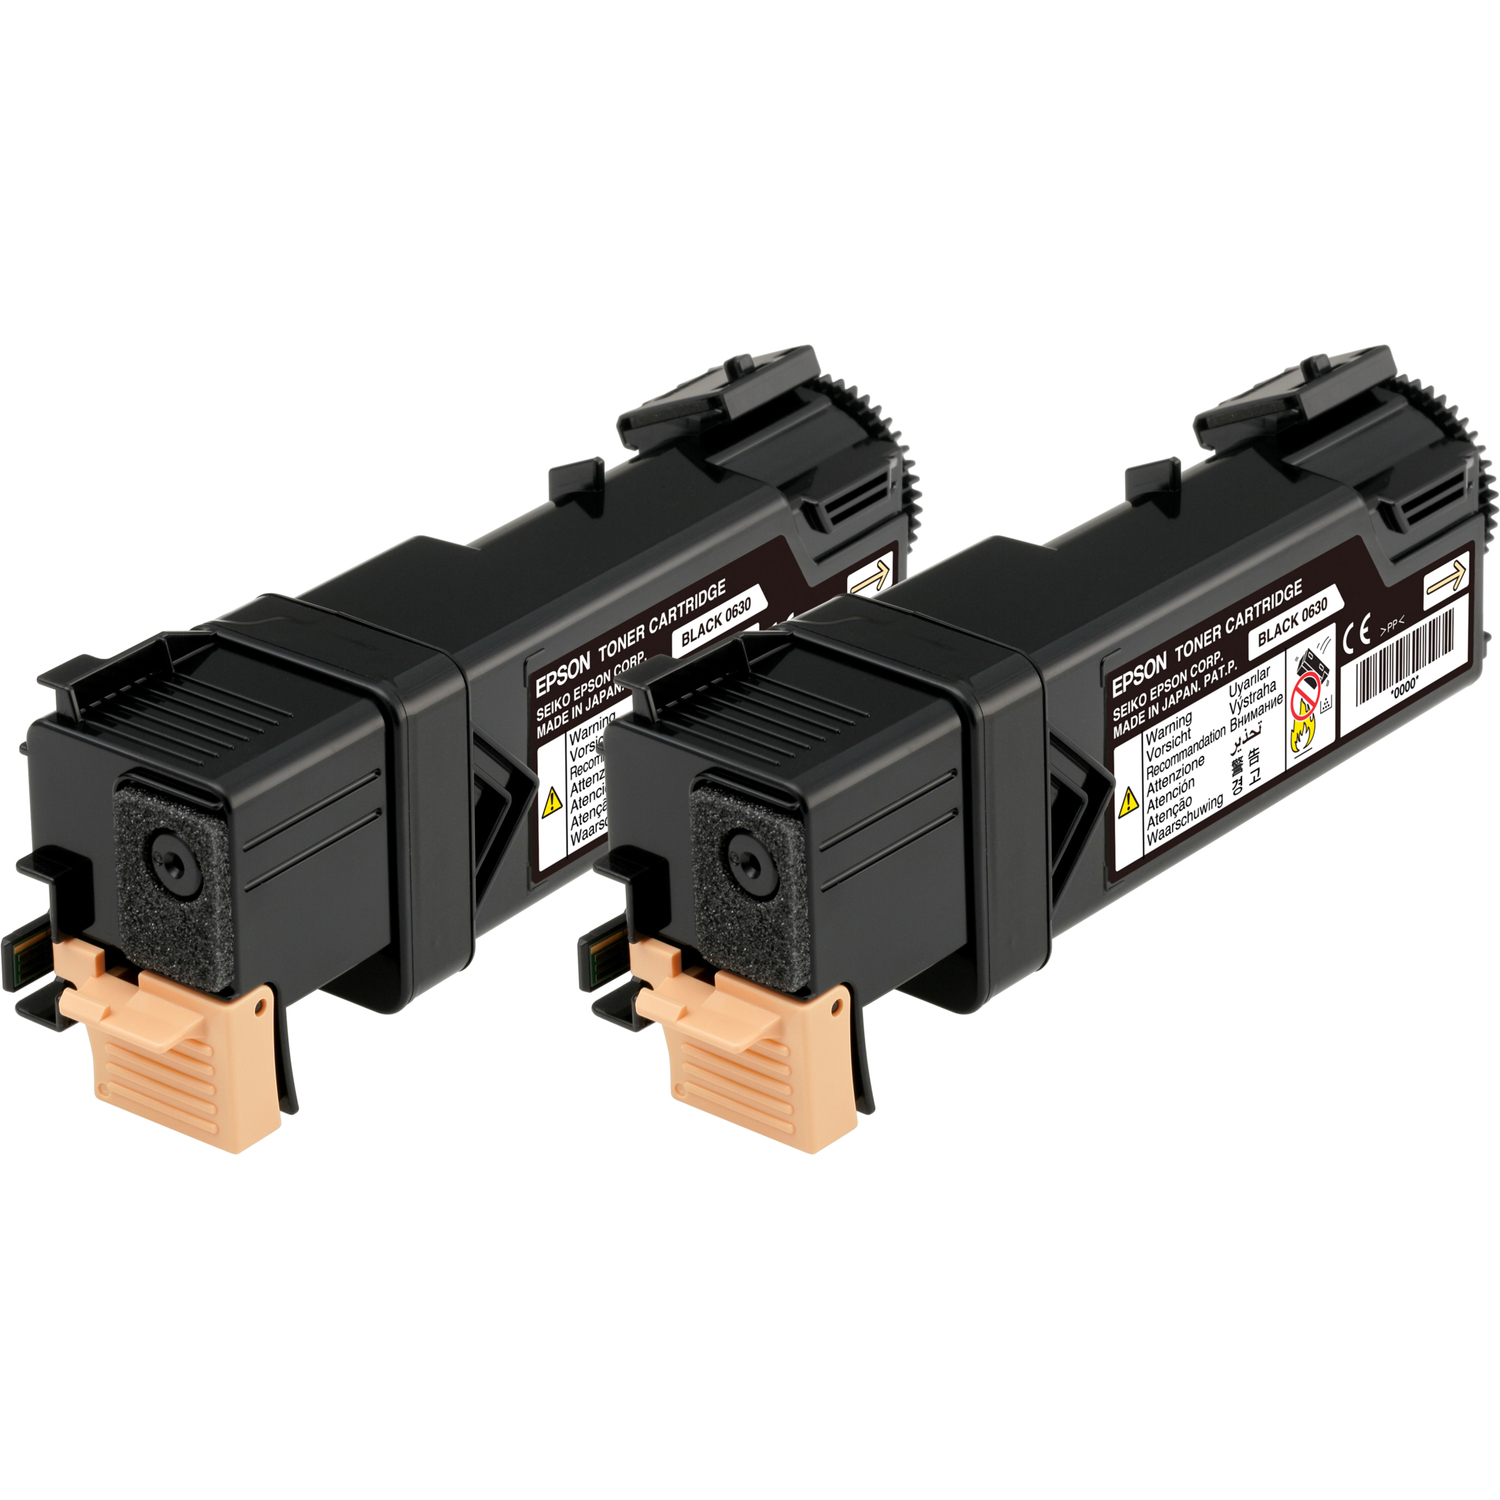 Epson C13S050631 Toner Cartridge - Black